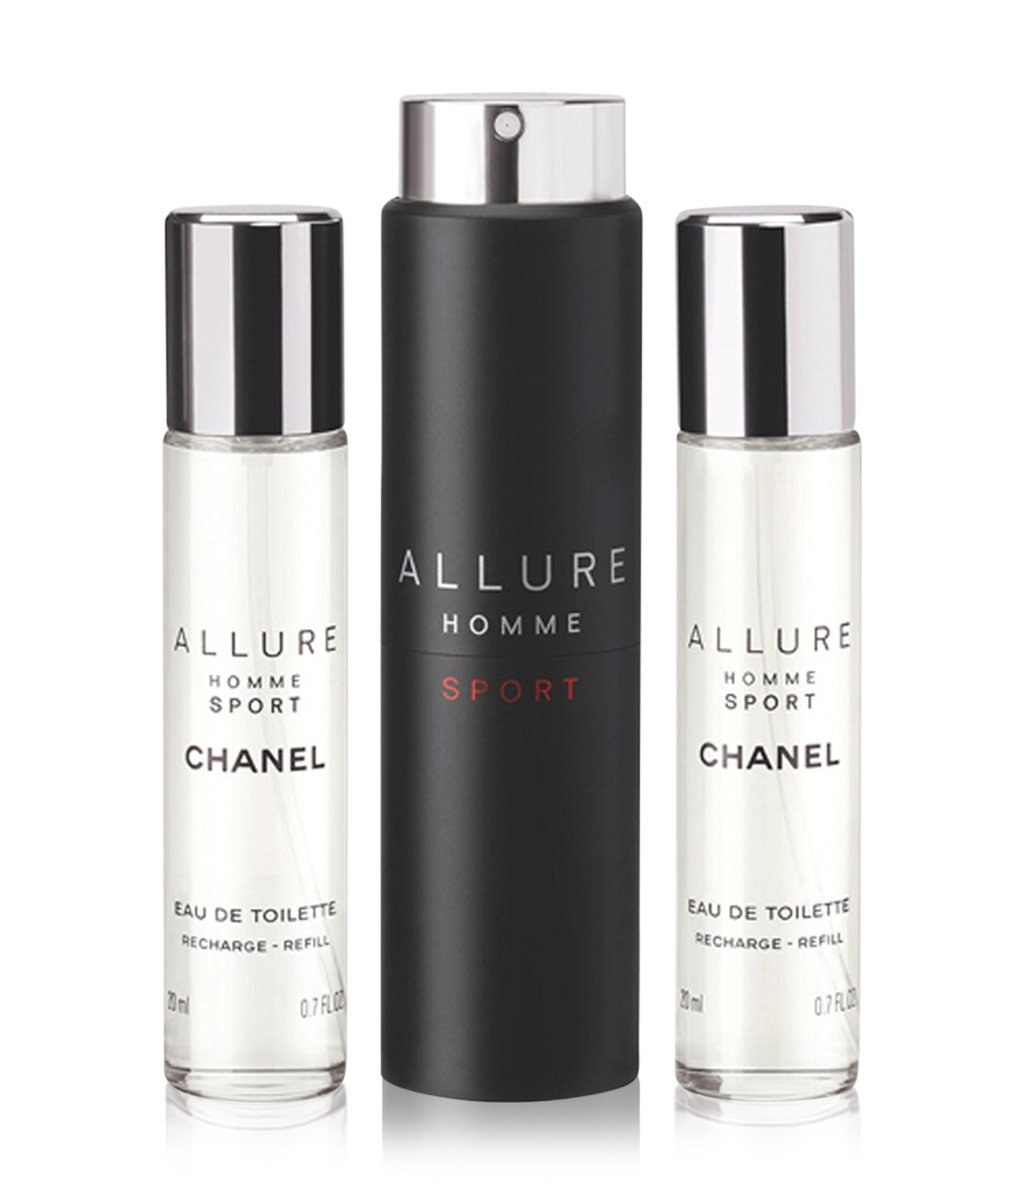 chanel allure homme sport nachf llbar bestellen flaconi. Black Bedroom Furniture Sets. Home Design Ideas